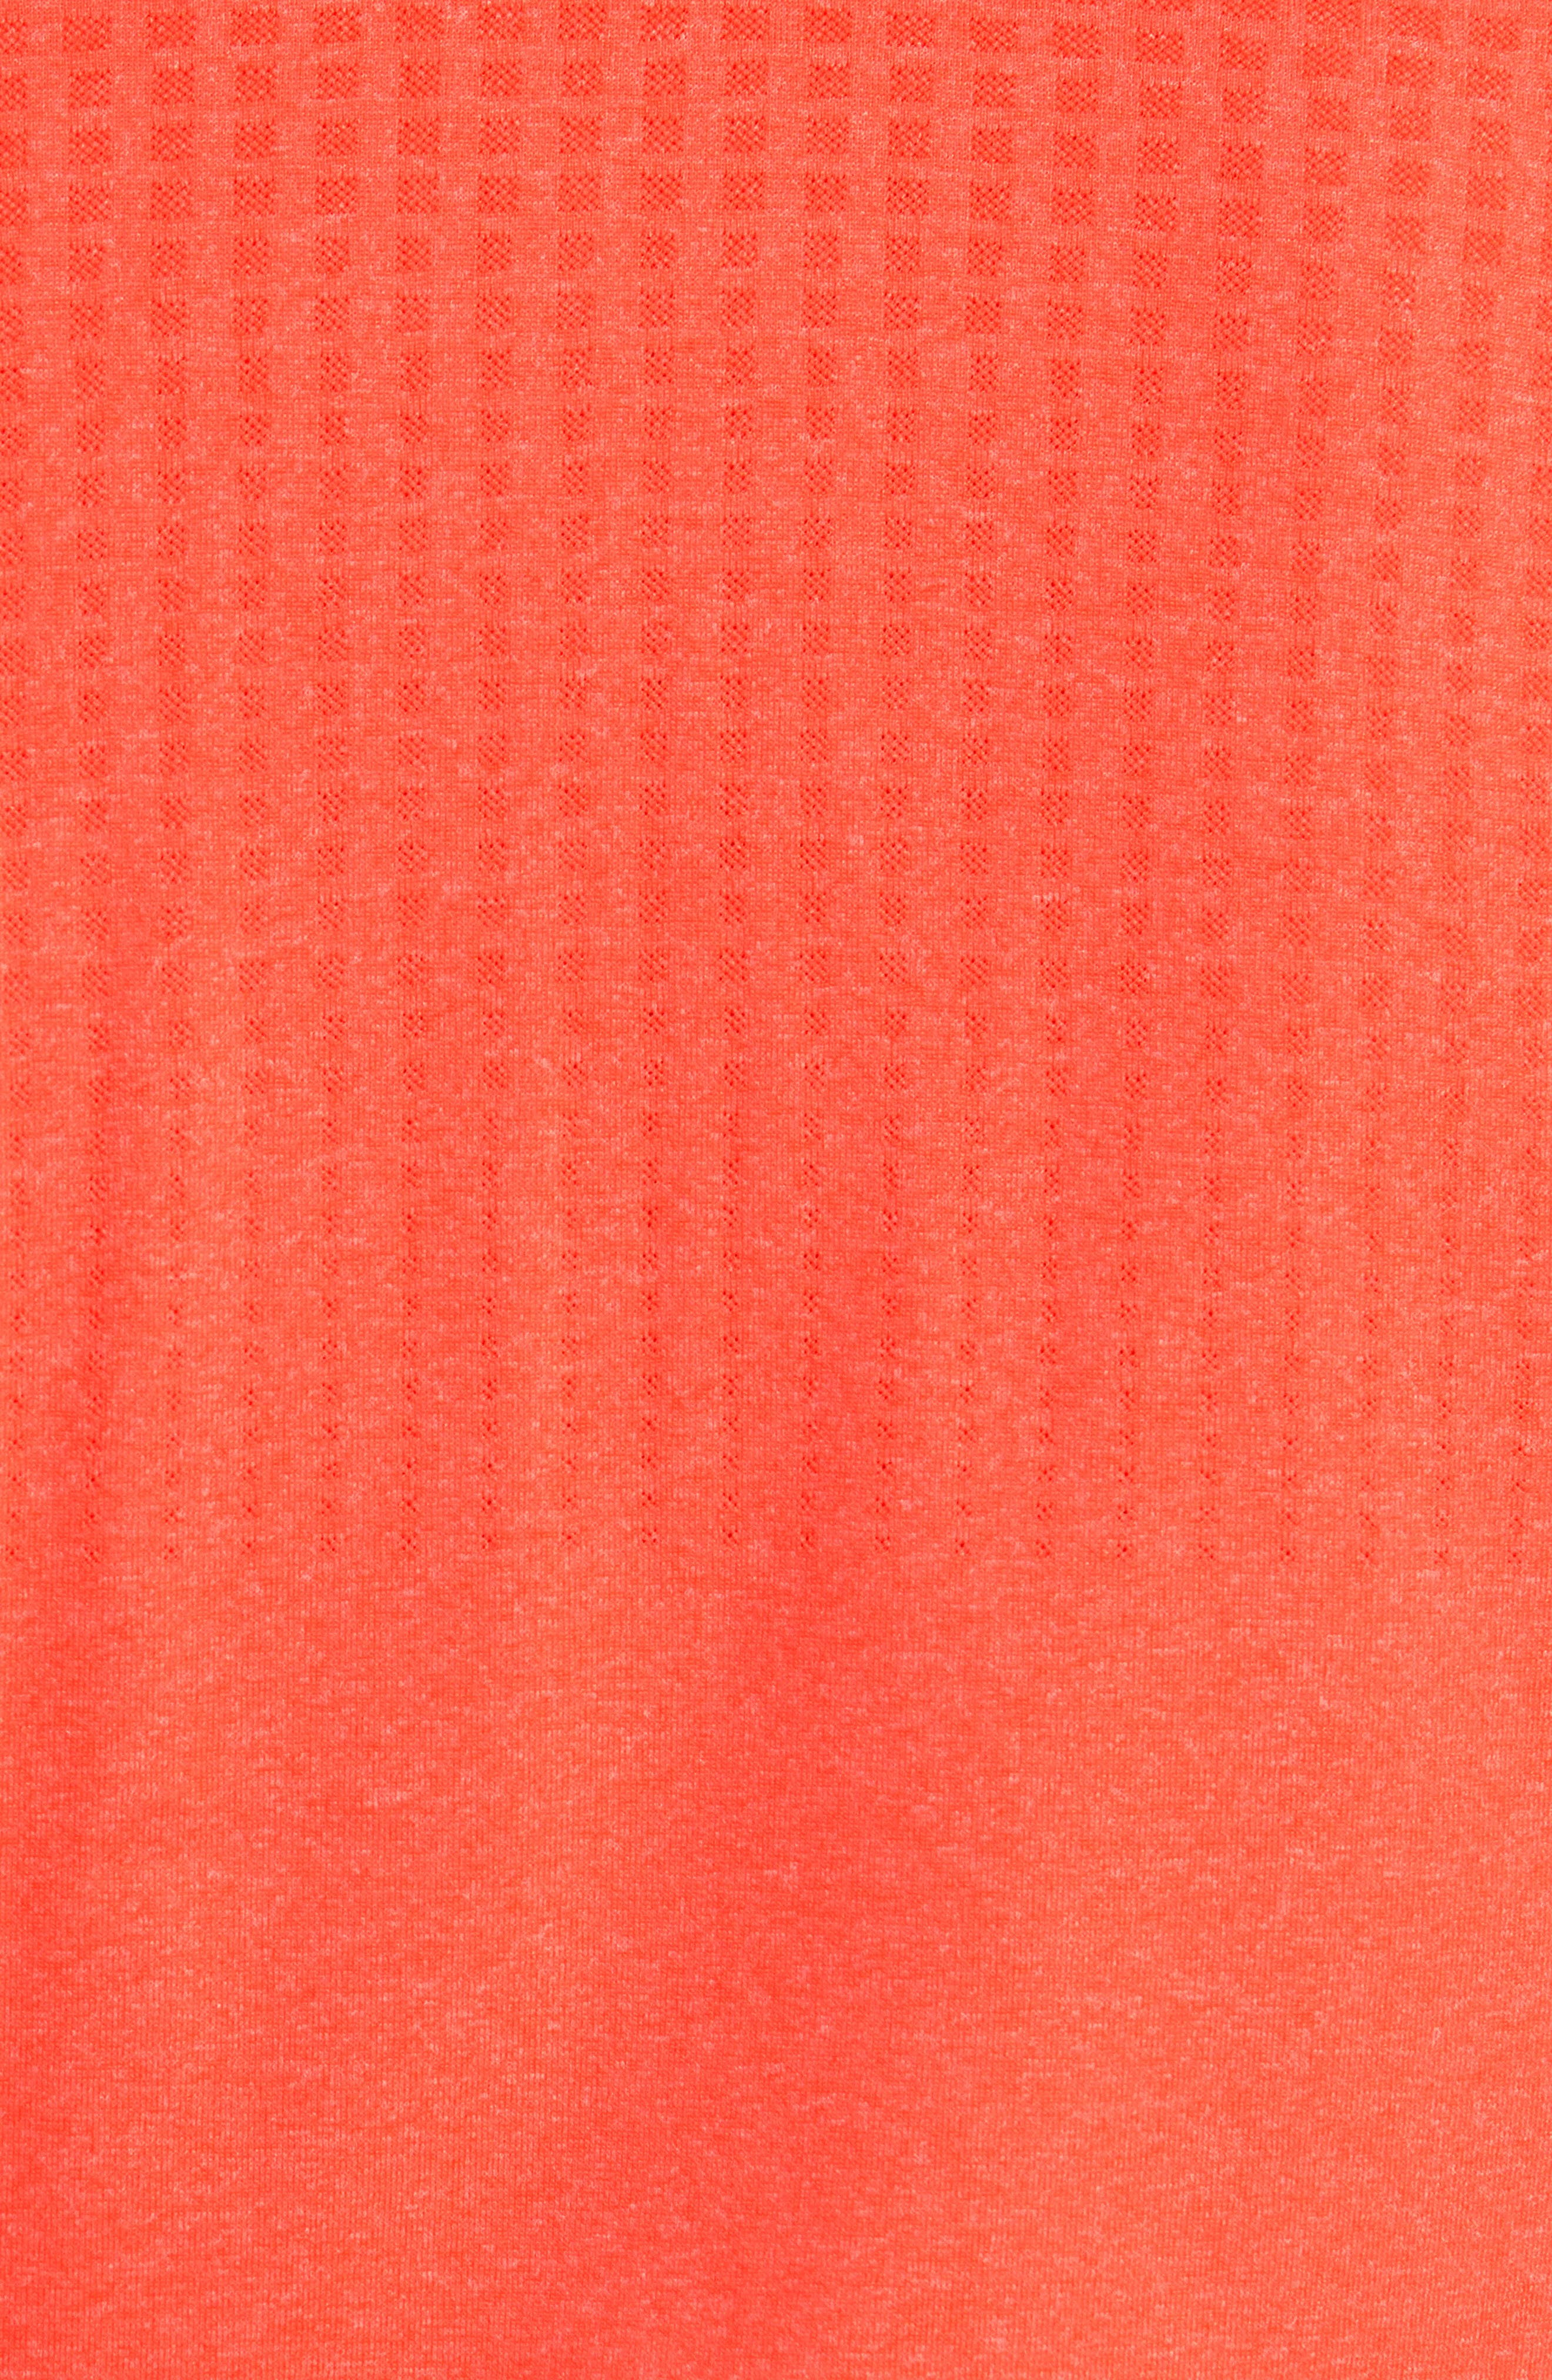 Threadborne Outer Glow Regular Fit Polo Shirt,                             Alternate thumbnail 5, color,                             NEON CORAL LIGHT/ HEATHER